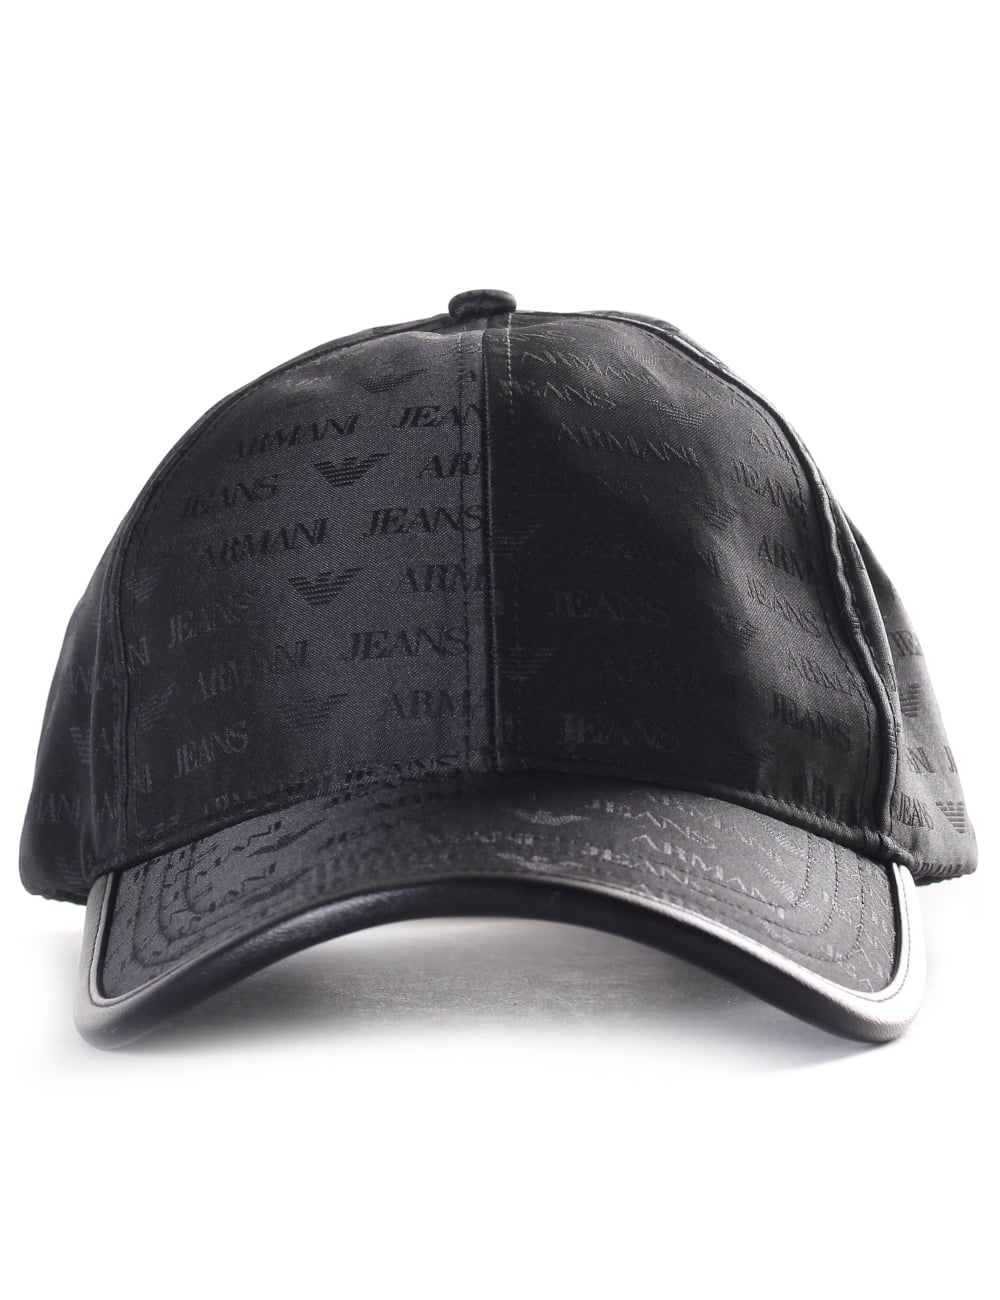 c98b88e7 Armani Jeans 934500 Men's Repeat Logo Baseball Cap Black